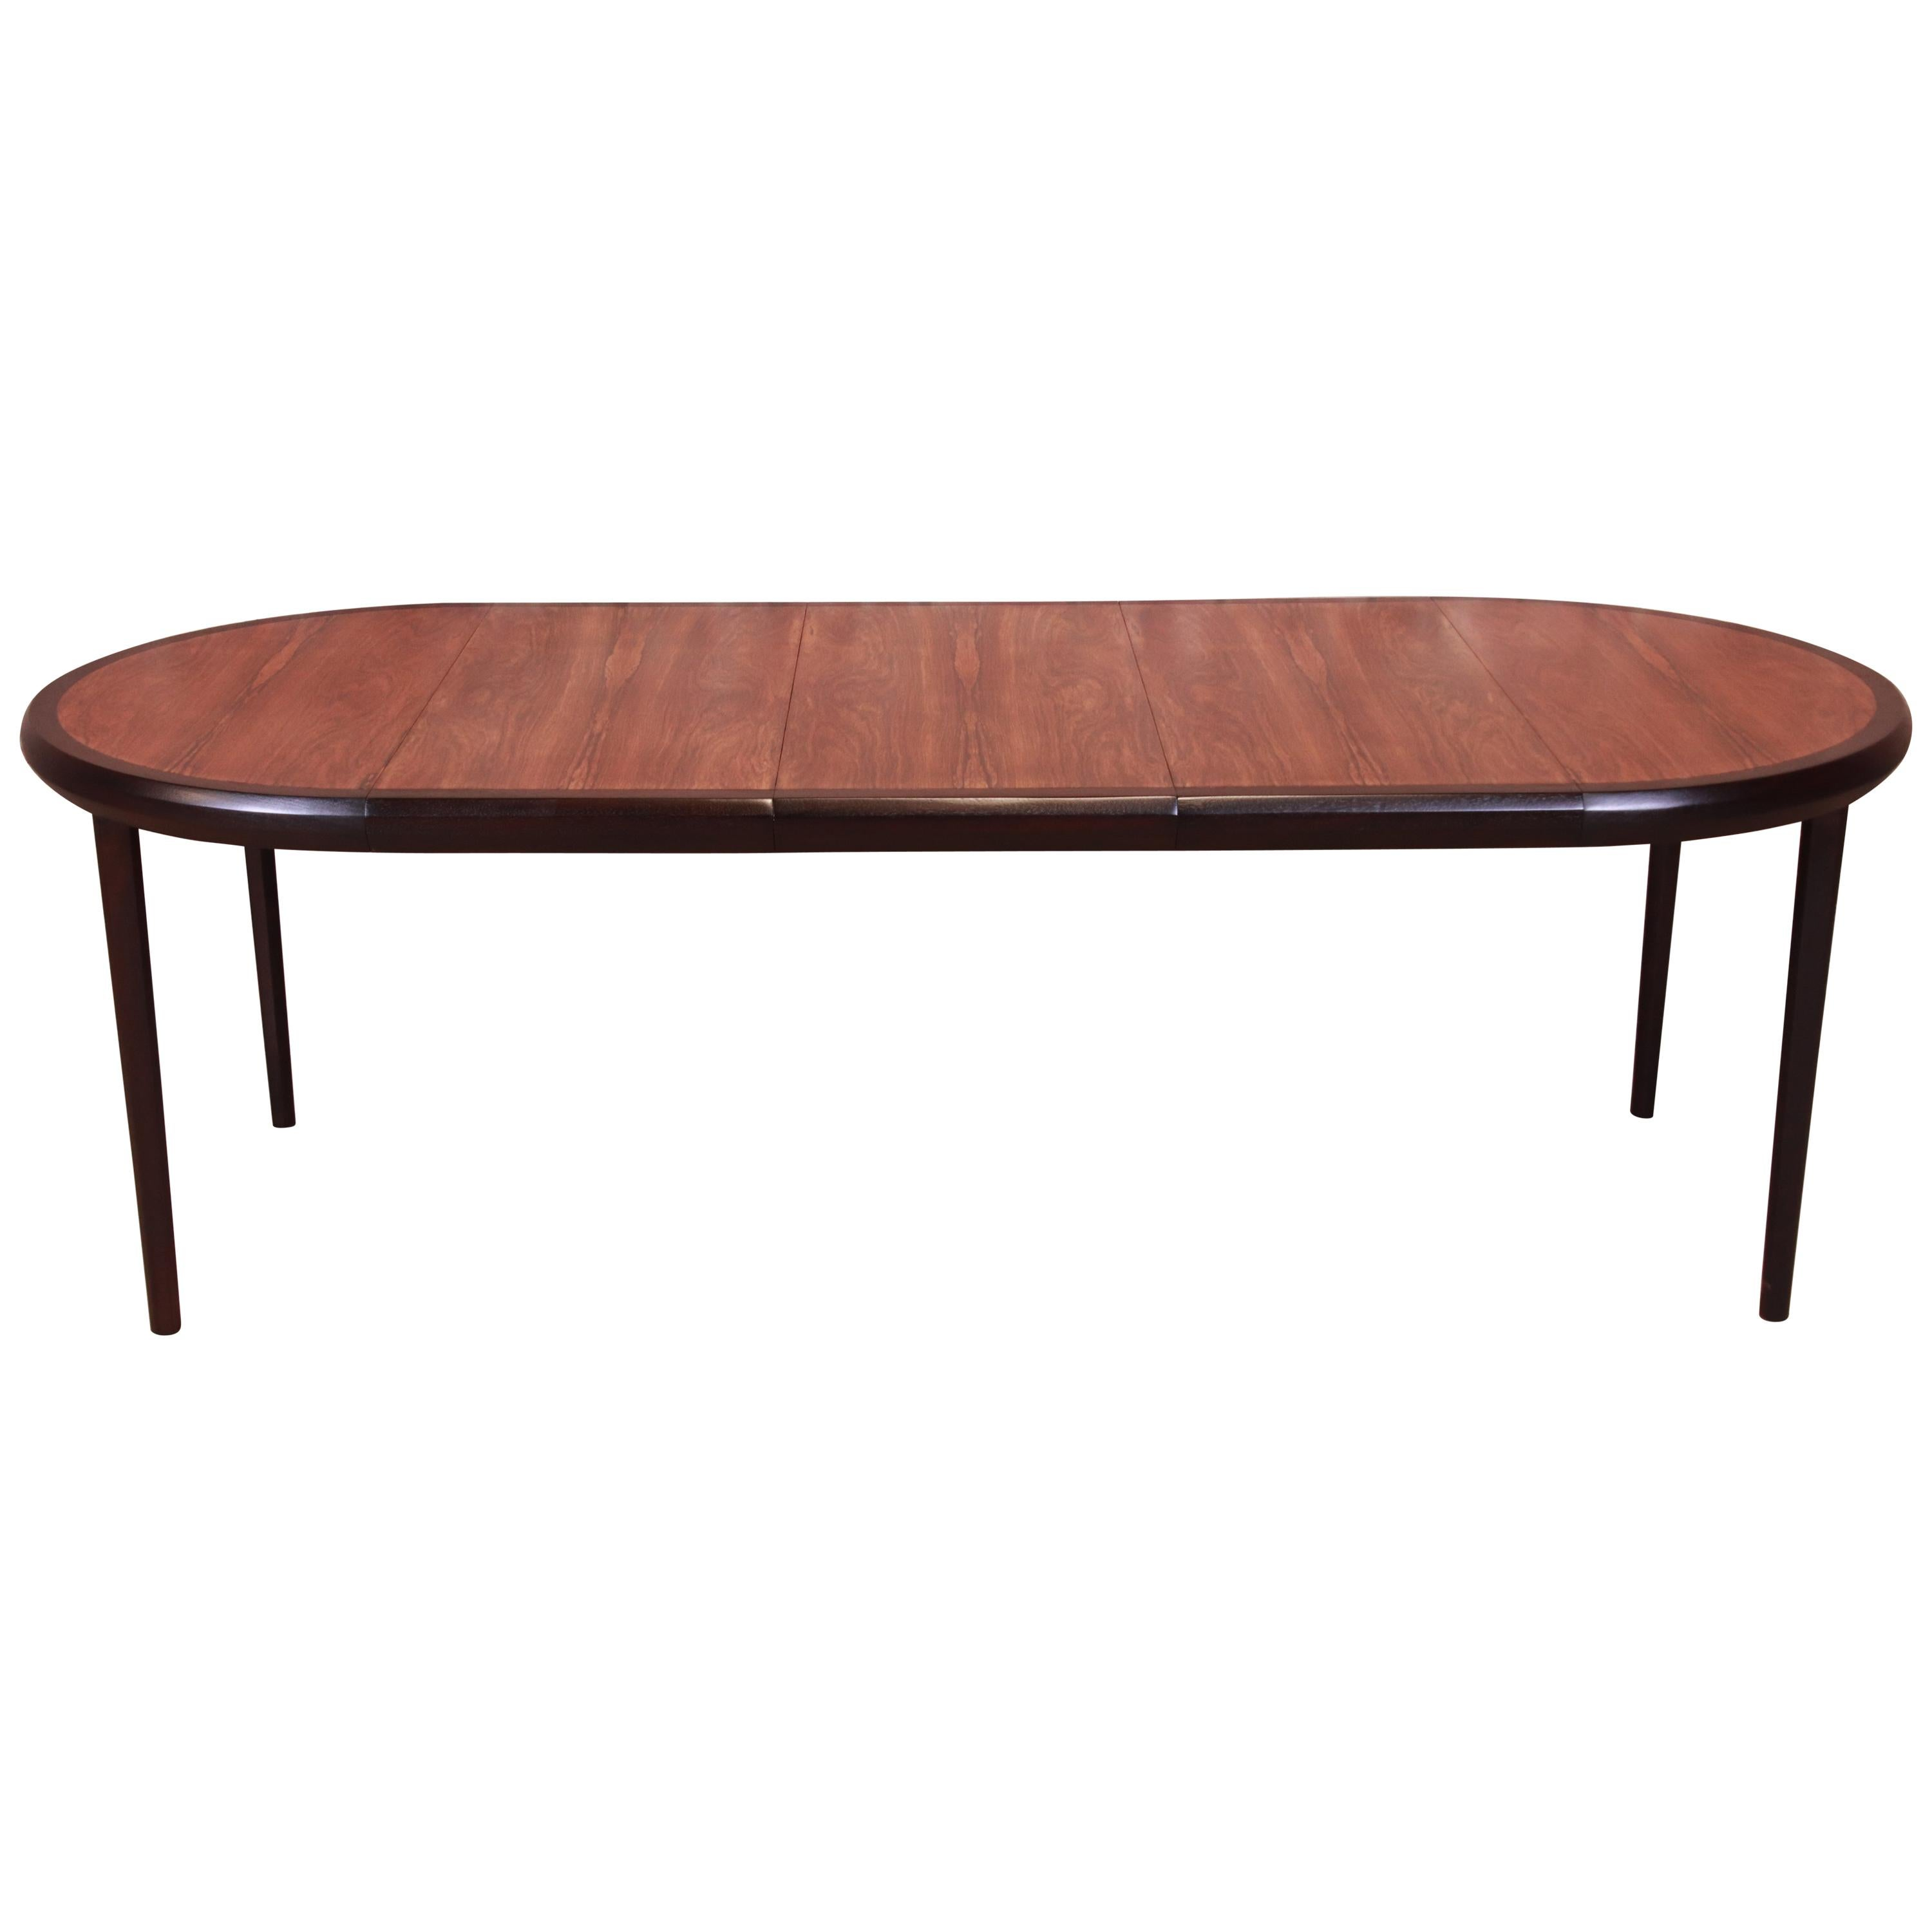 Harvey Probber Rosewood and Ebonized Walnut Extension Dining Table, Refinished